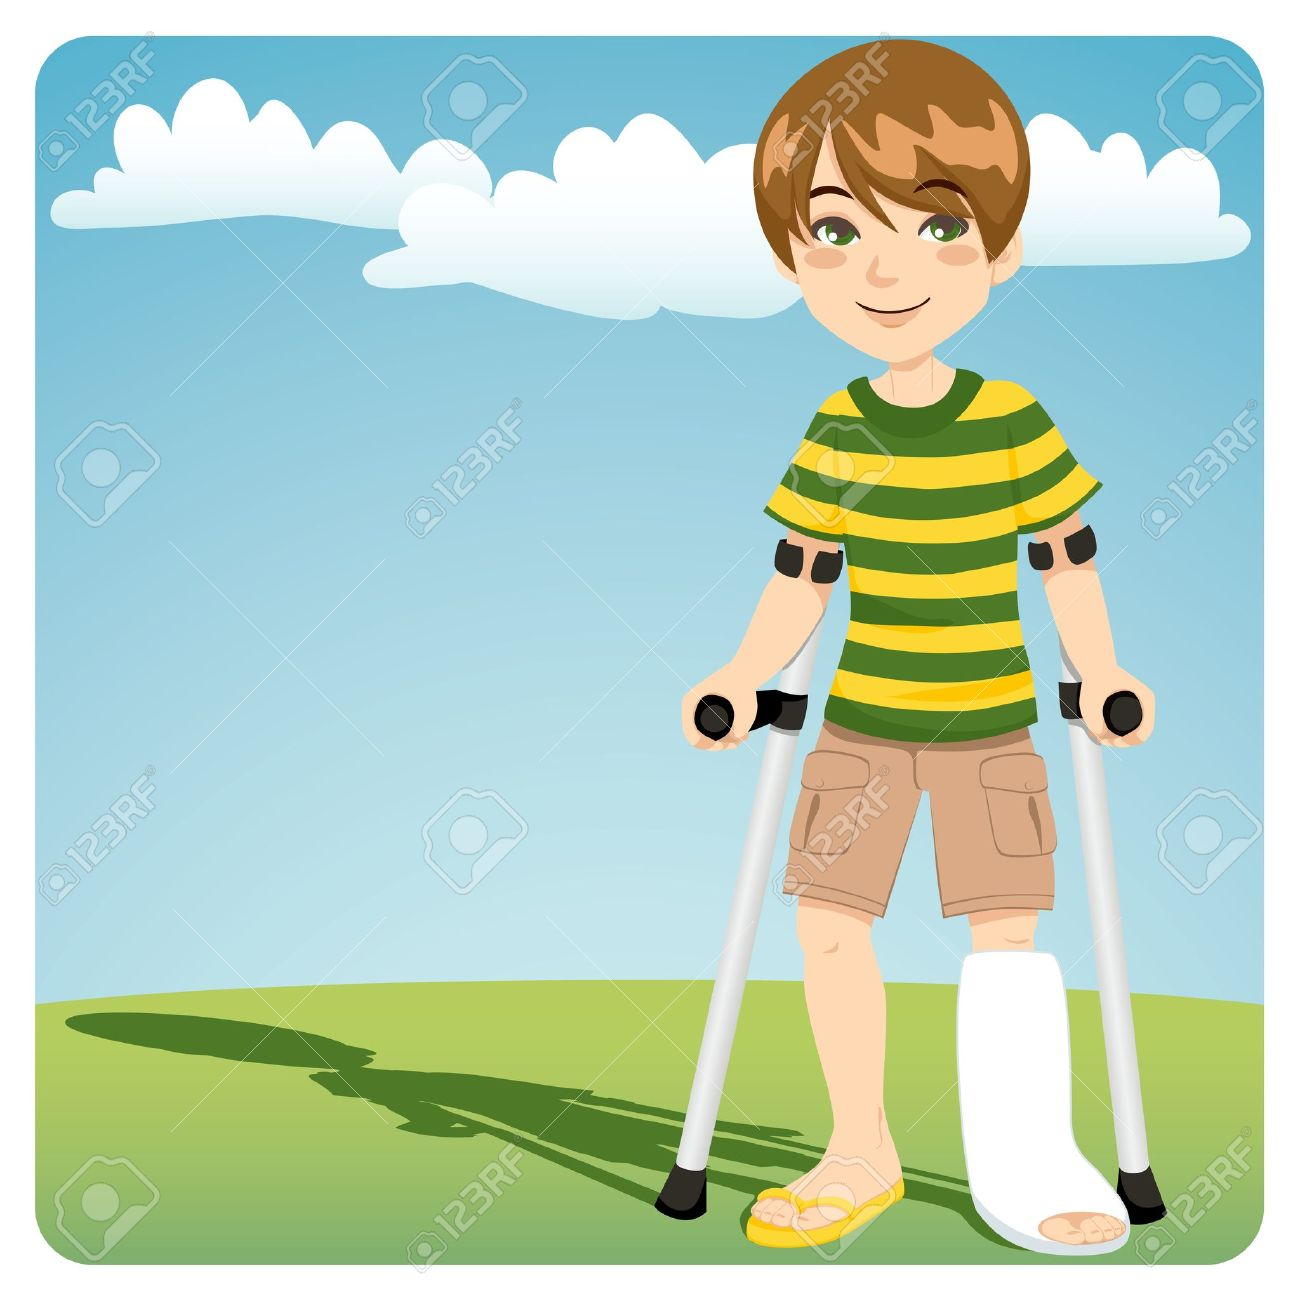 Young boy with cast broken ankle walking outdoors with crutches Stock Vector - 11012352